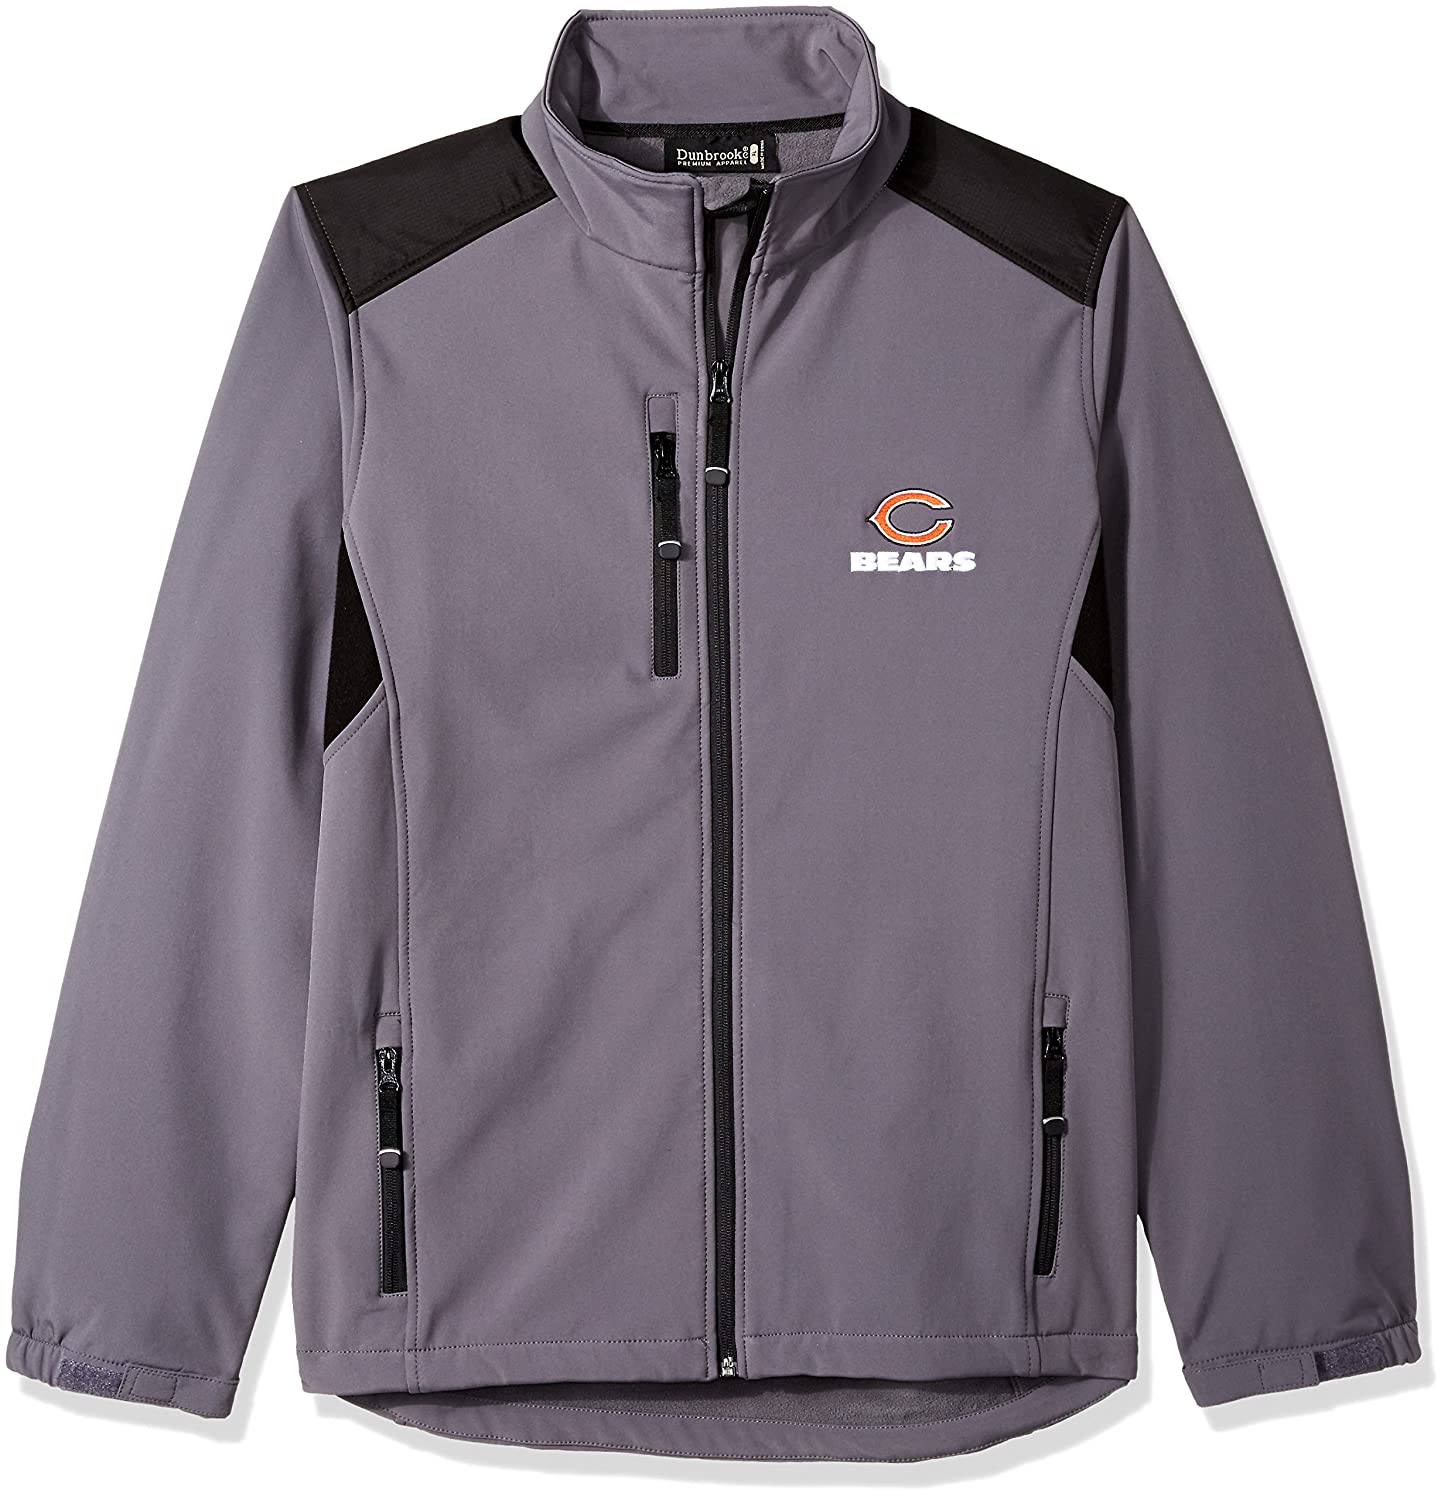 new concept ed7dc e5ce6 Dunbrooke Apparel Men's Softshell Jacket